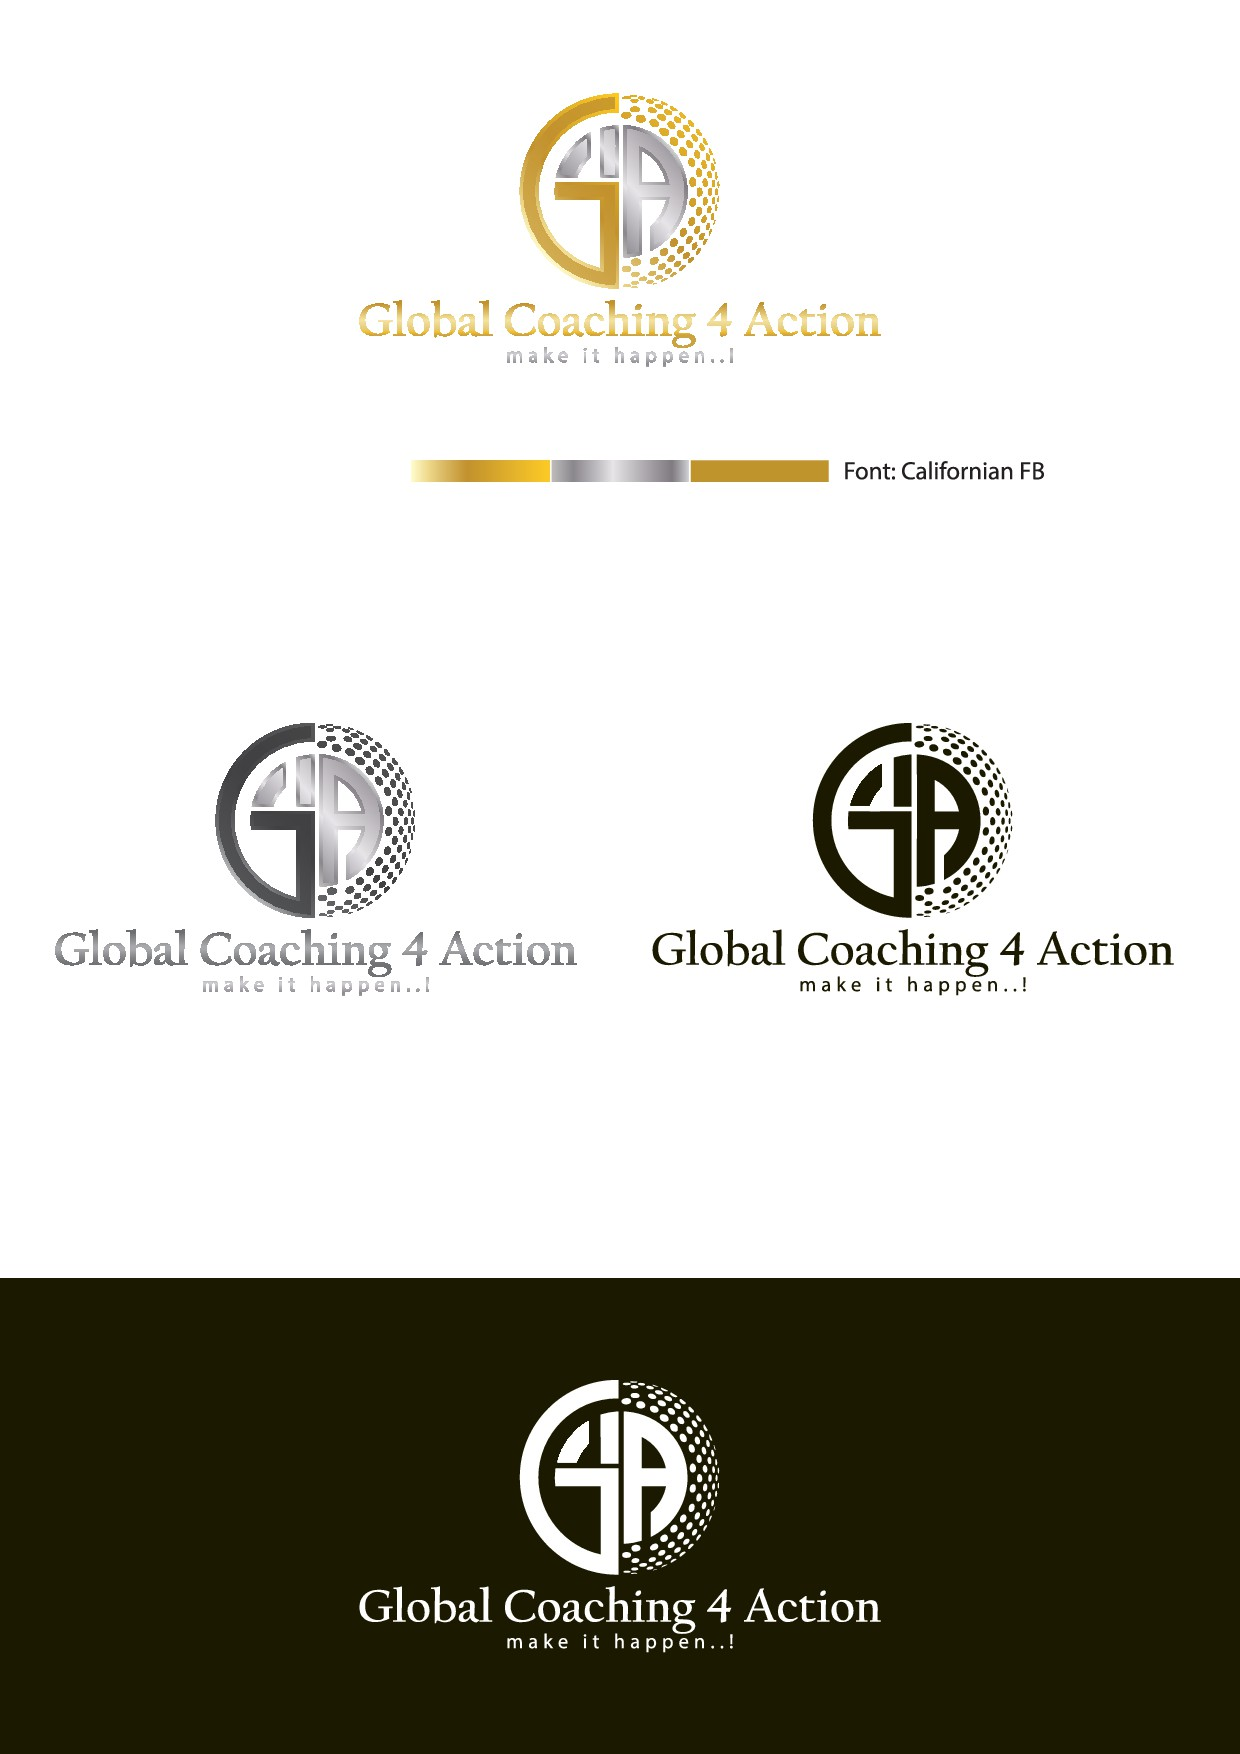 Global Coaching 4 Action